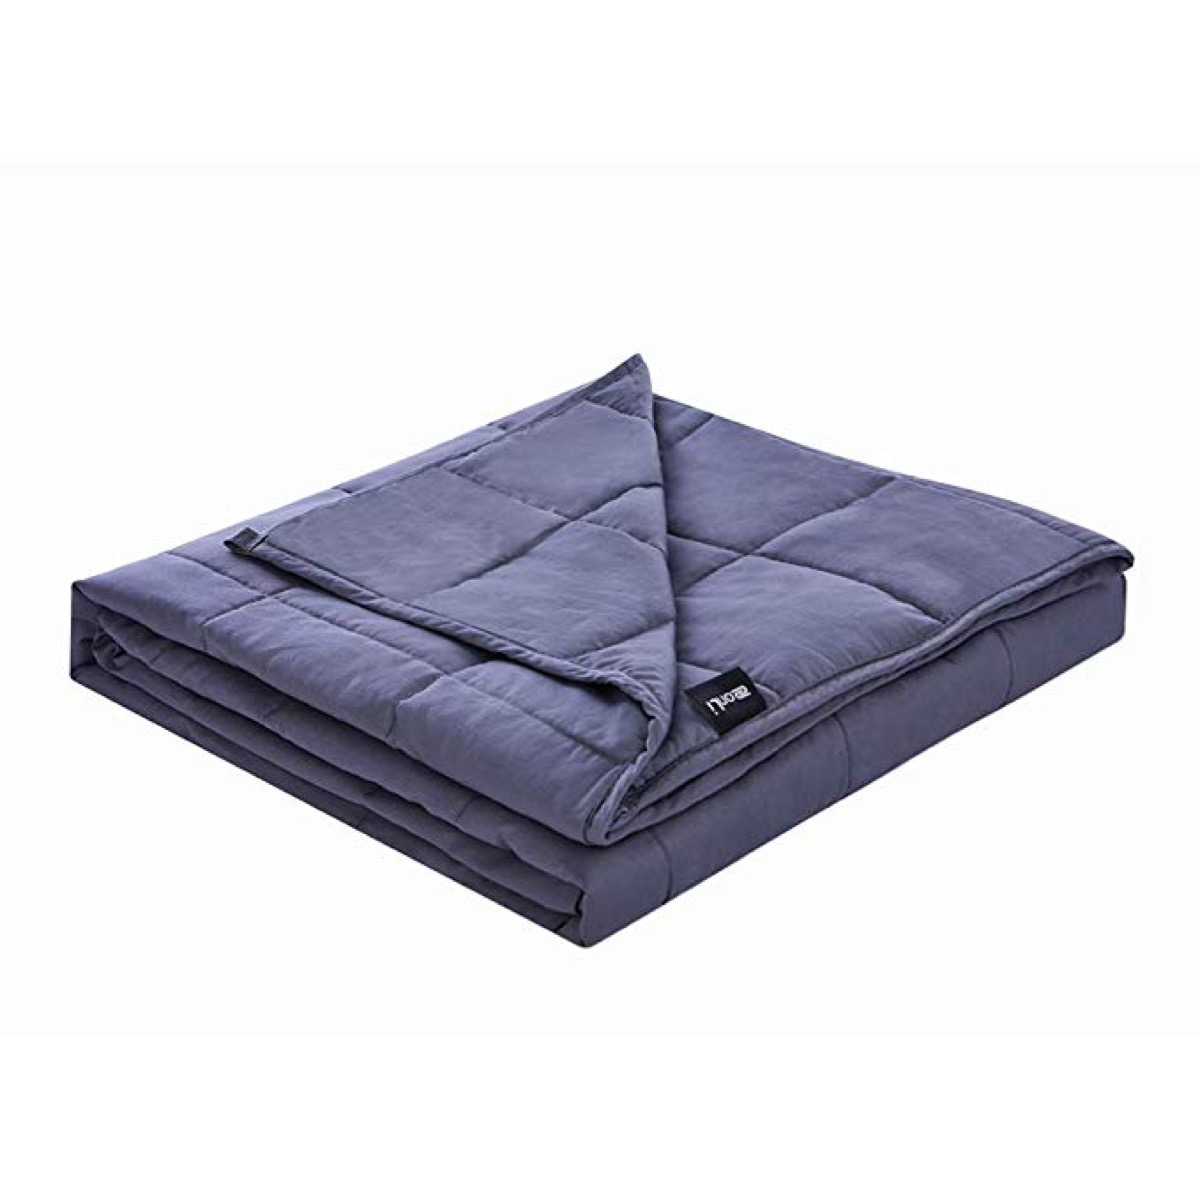 zonli weighted blanket, gifts for girlfriend